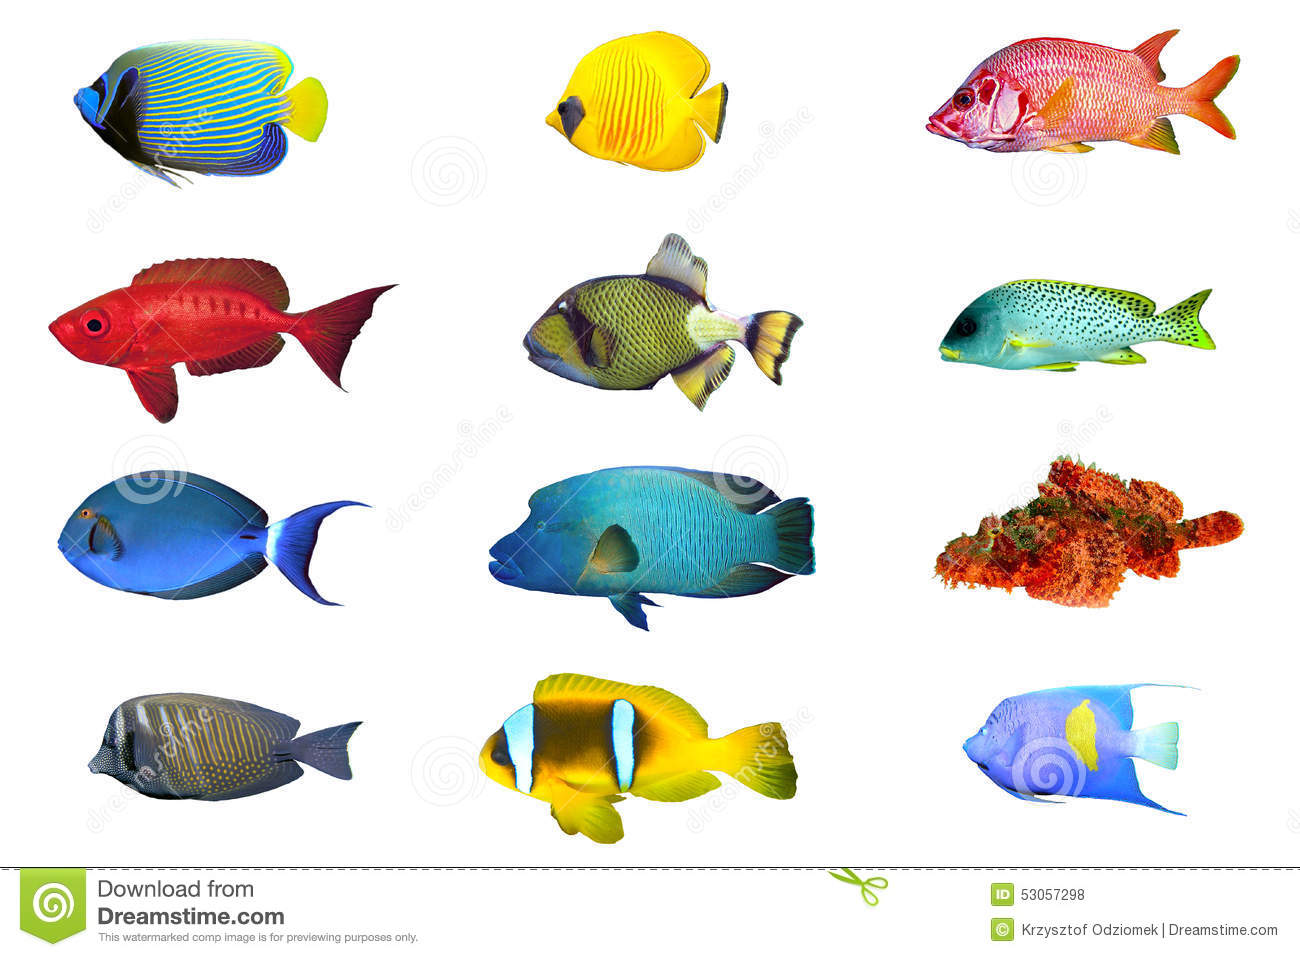 Fish species - index of red sea fish isolated on white.